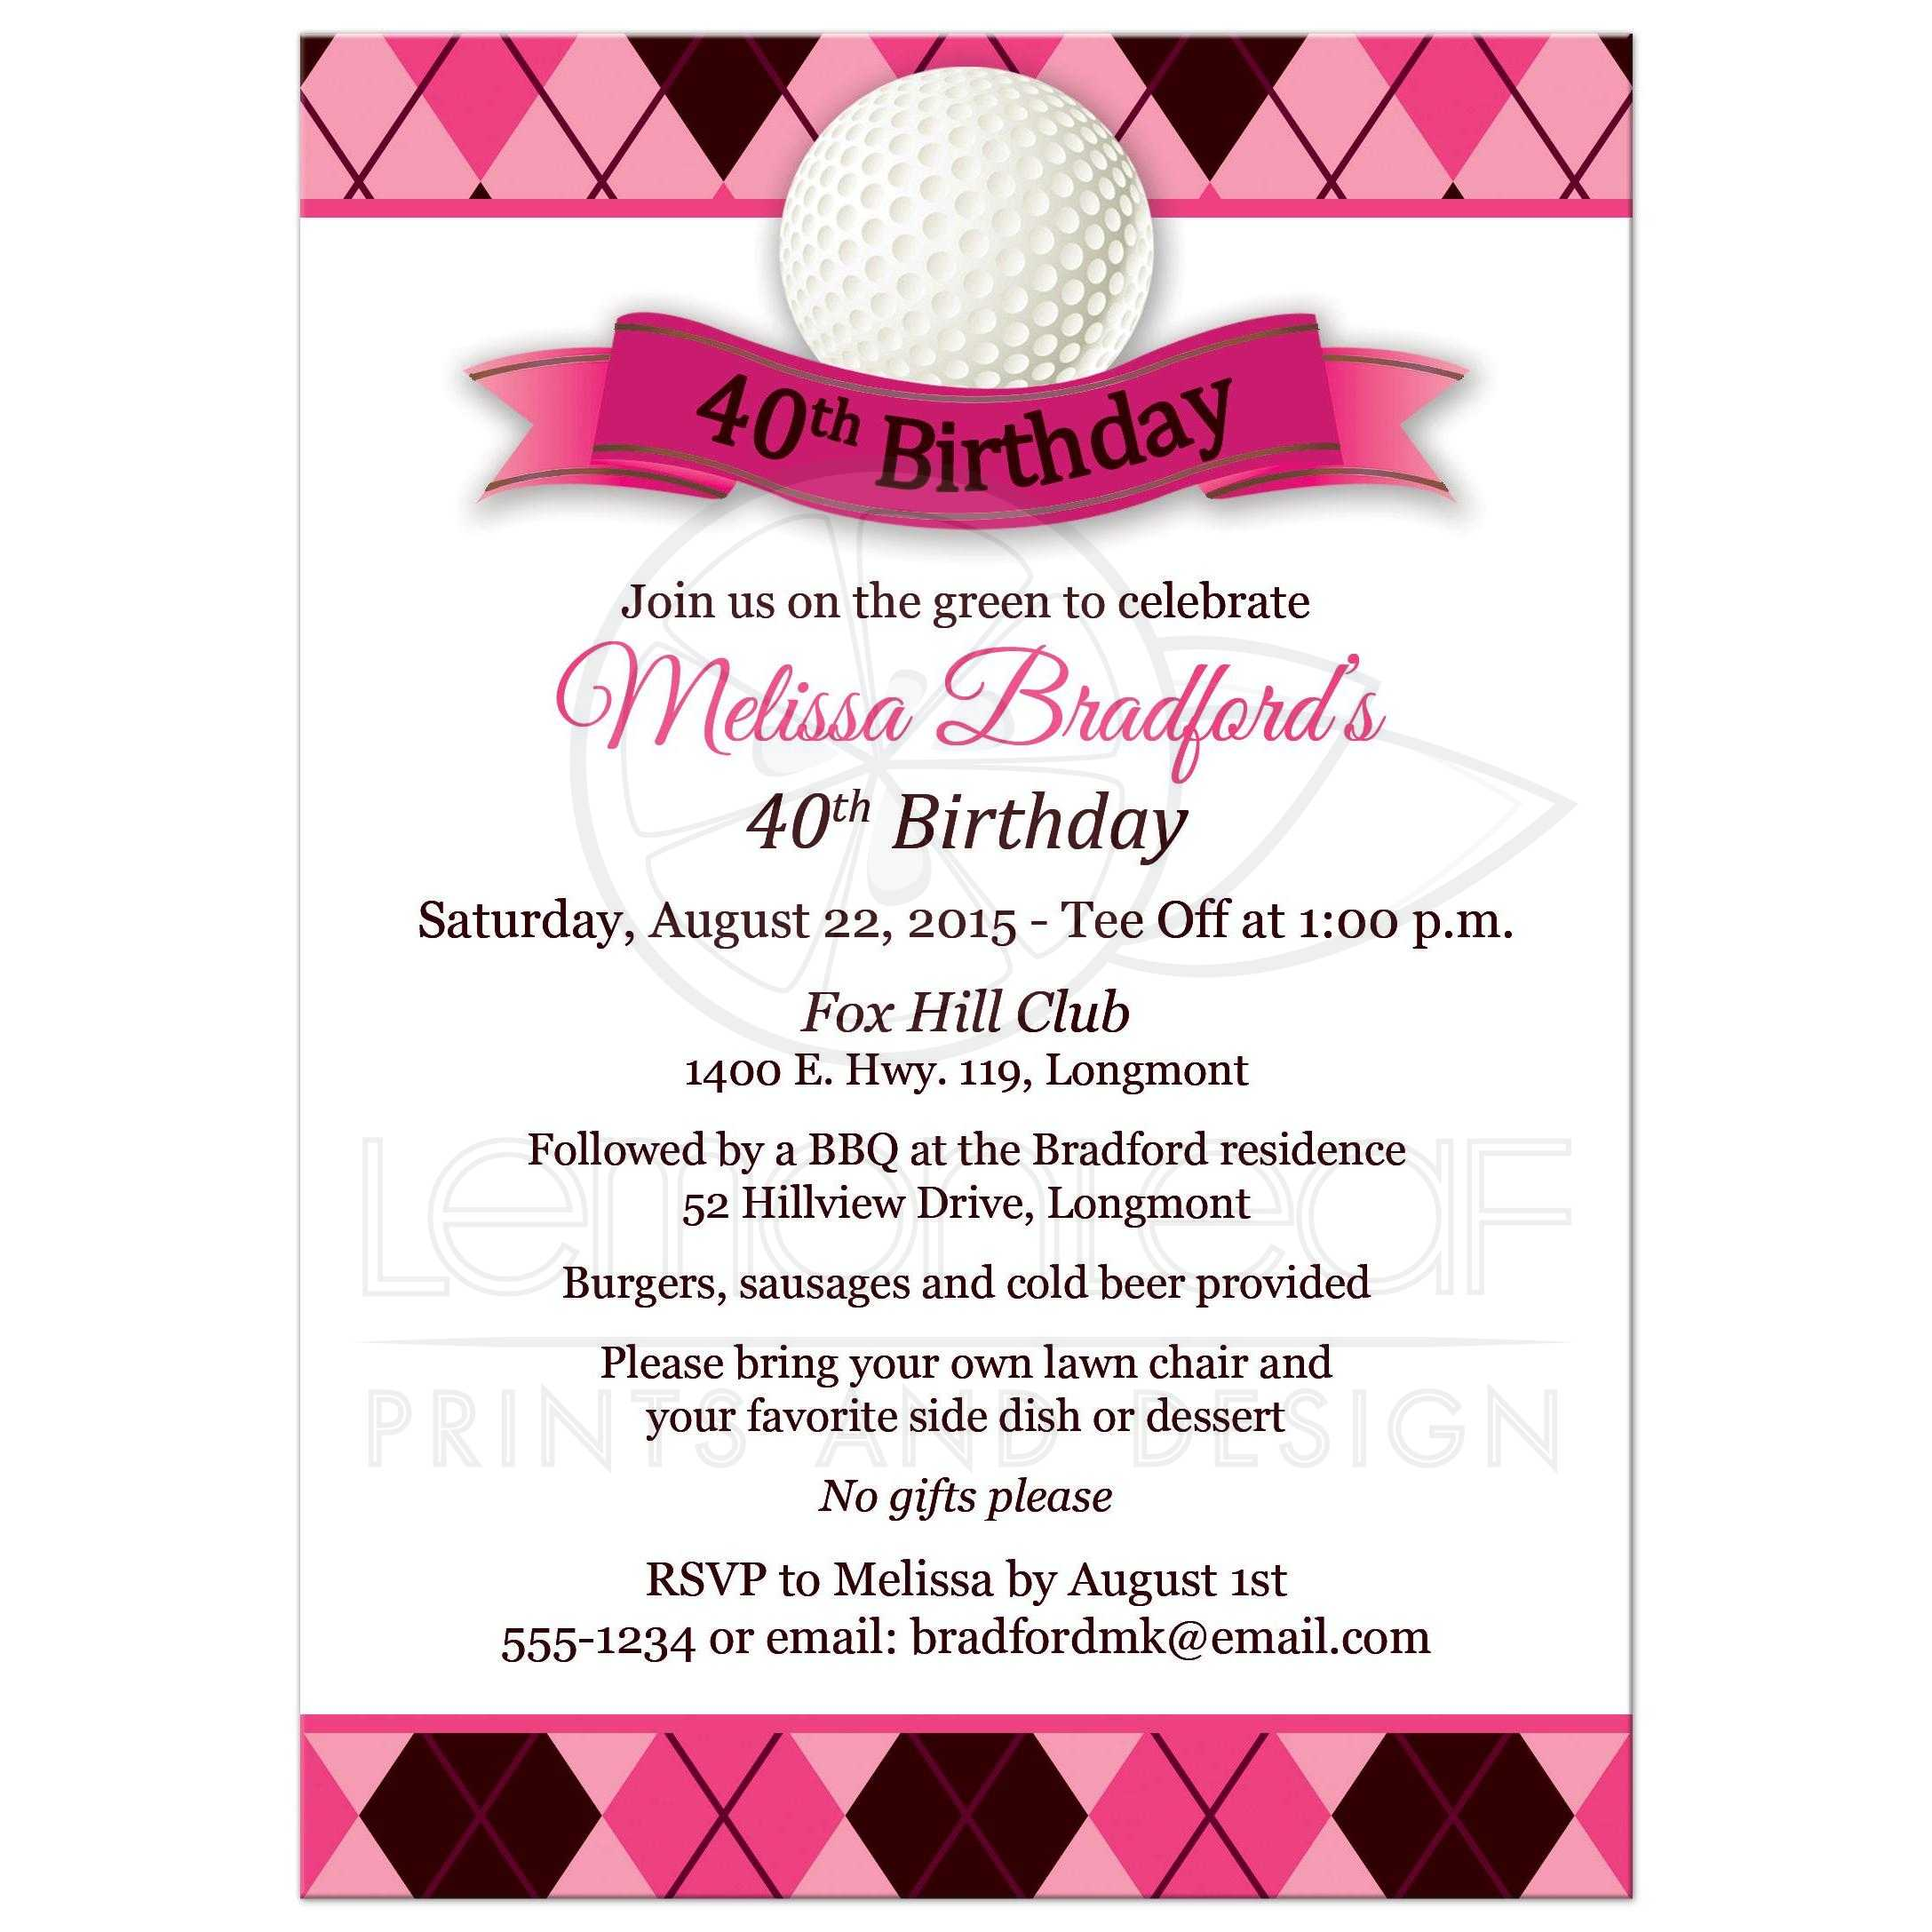 40th Birthday Party Invitation Golf Theme Pink Black White